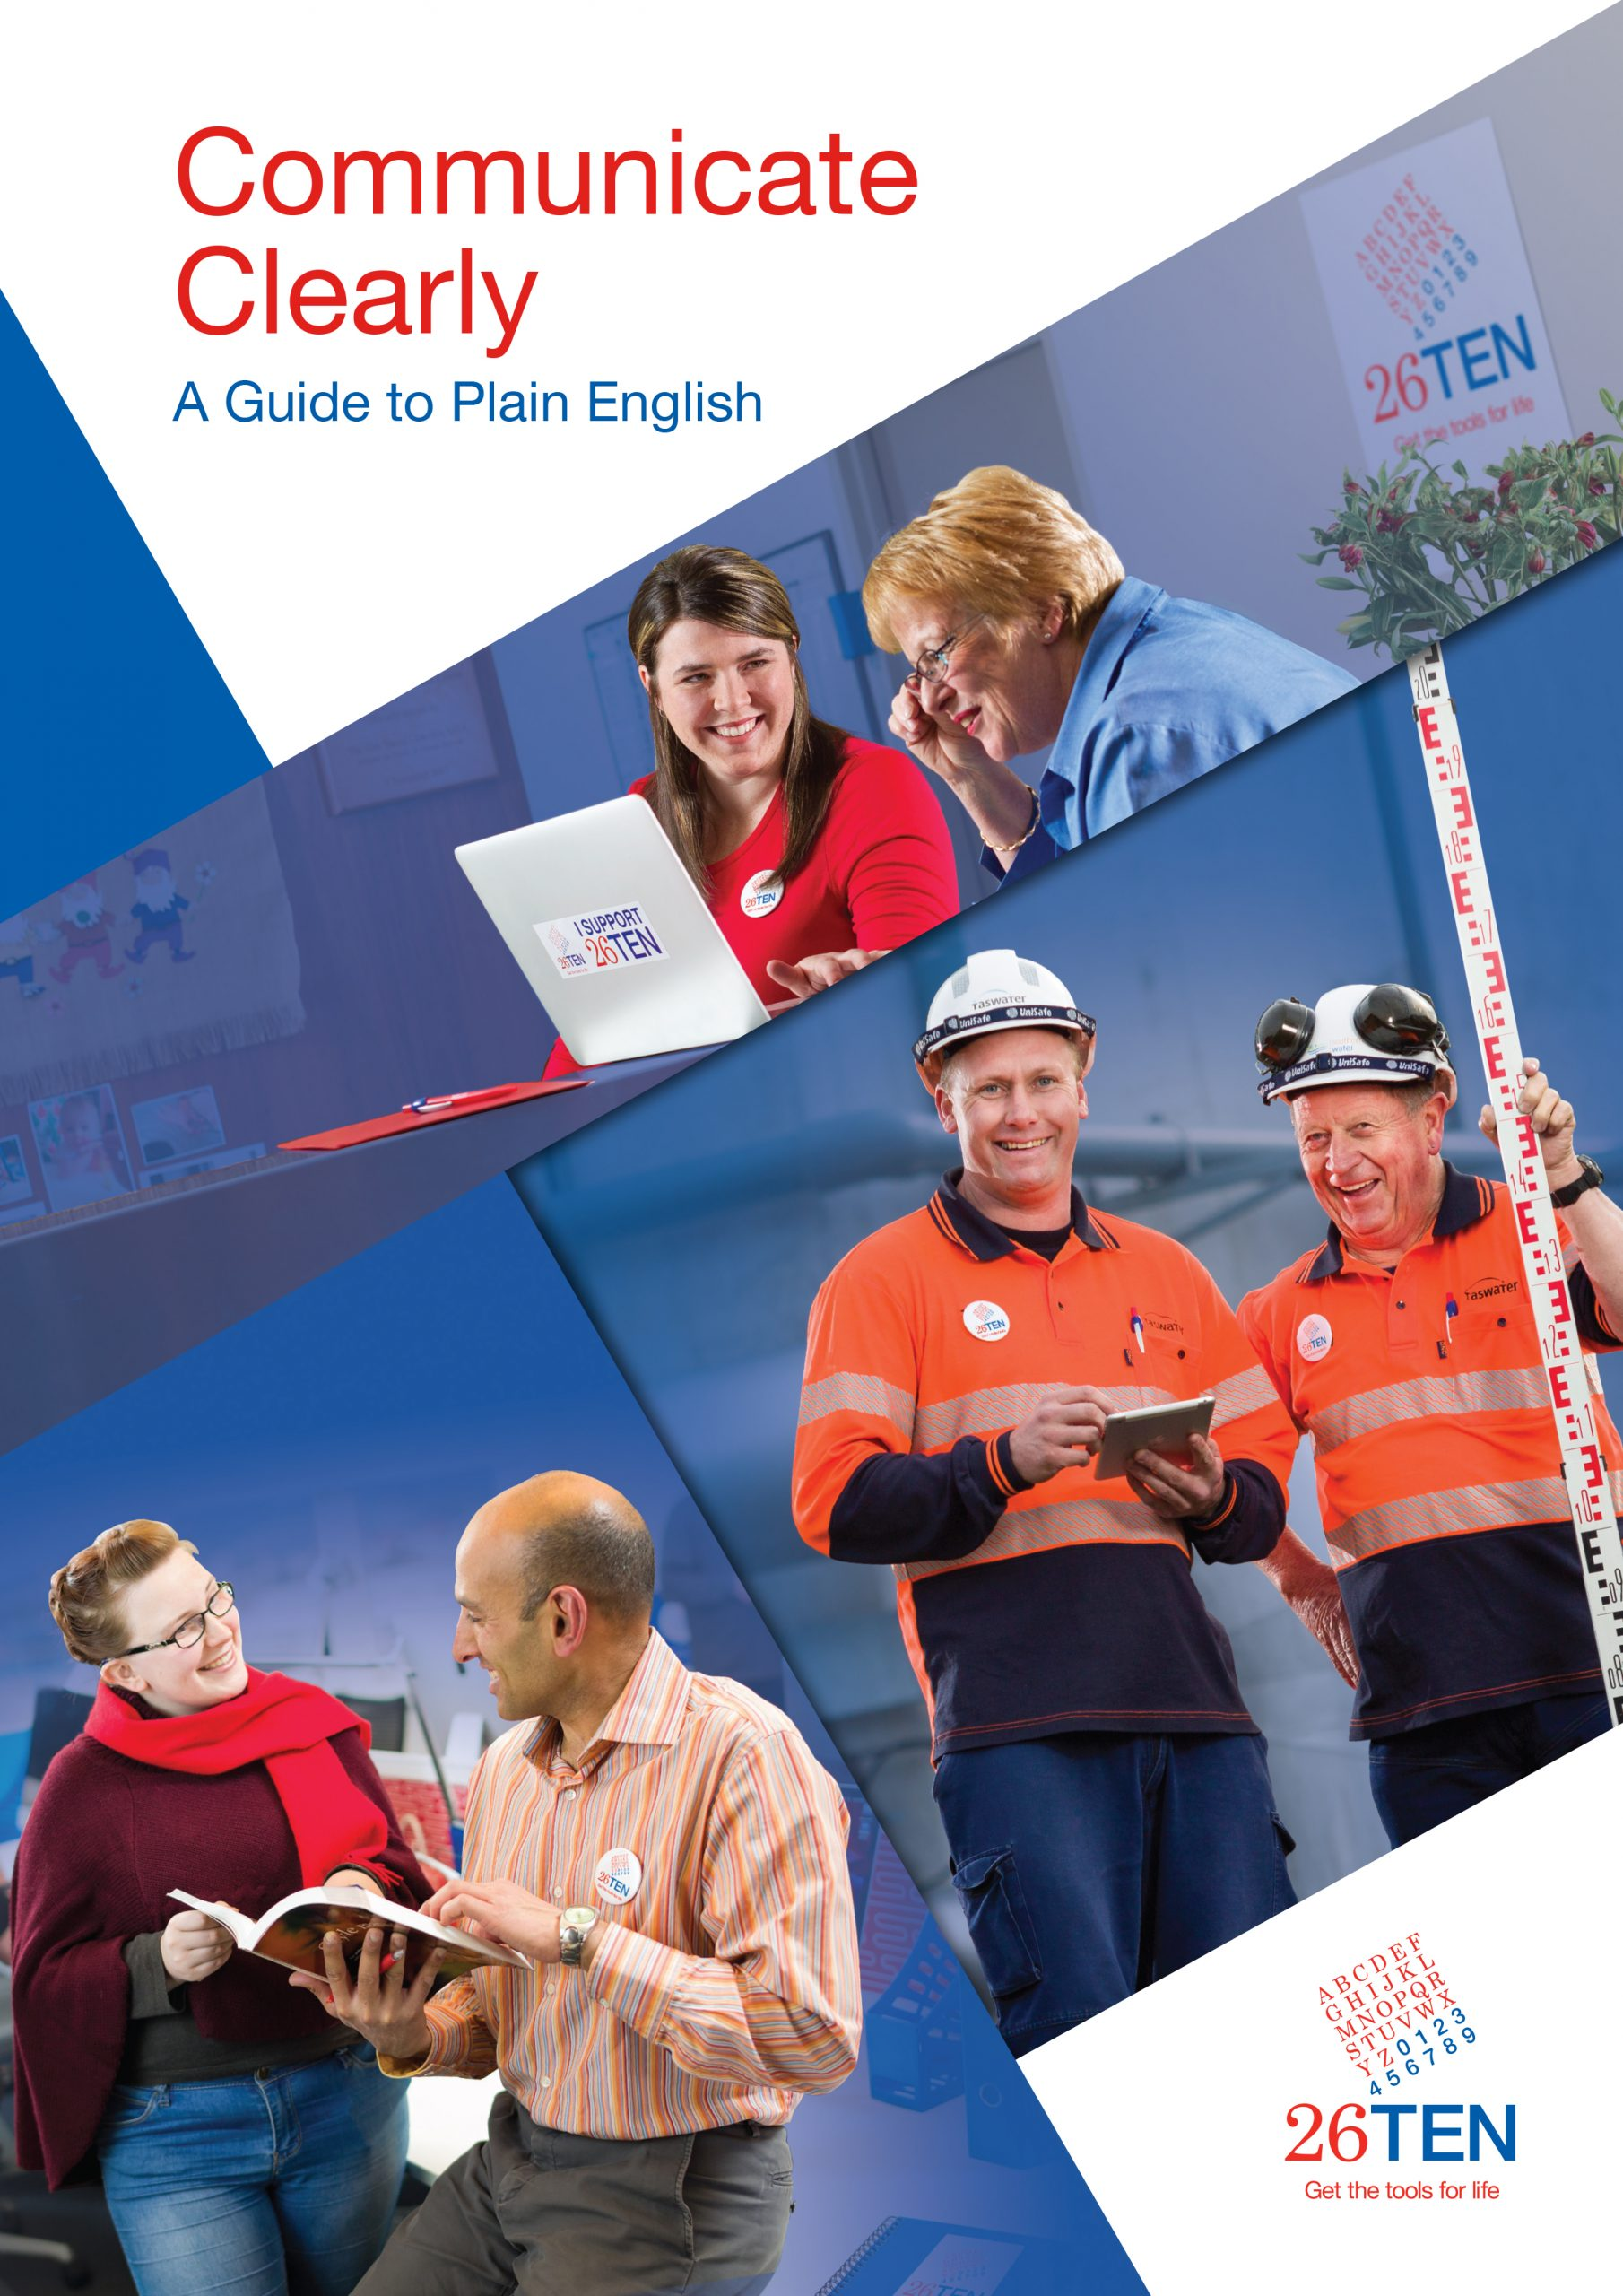 Communicate clearly - a guide to plain english workbook cover